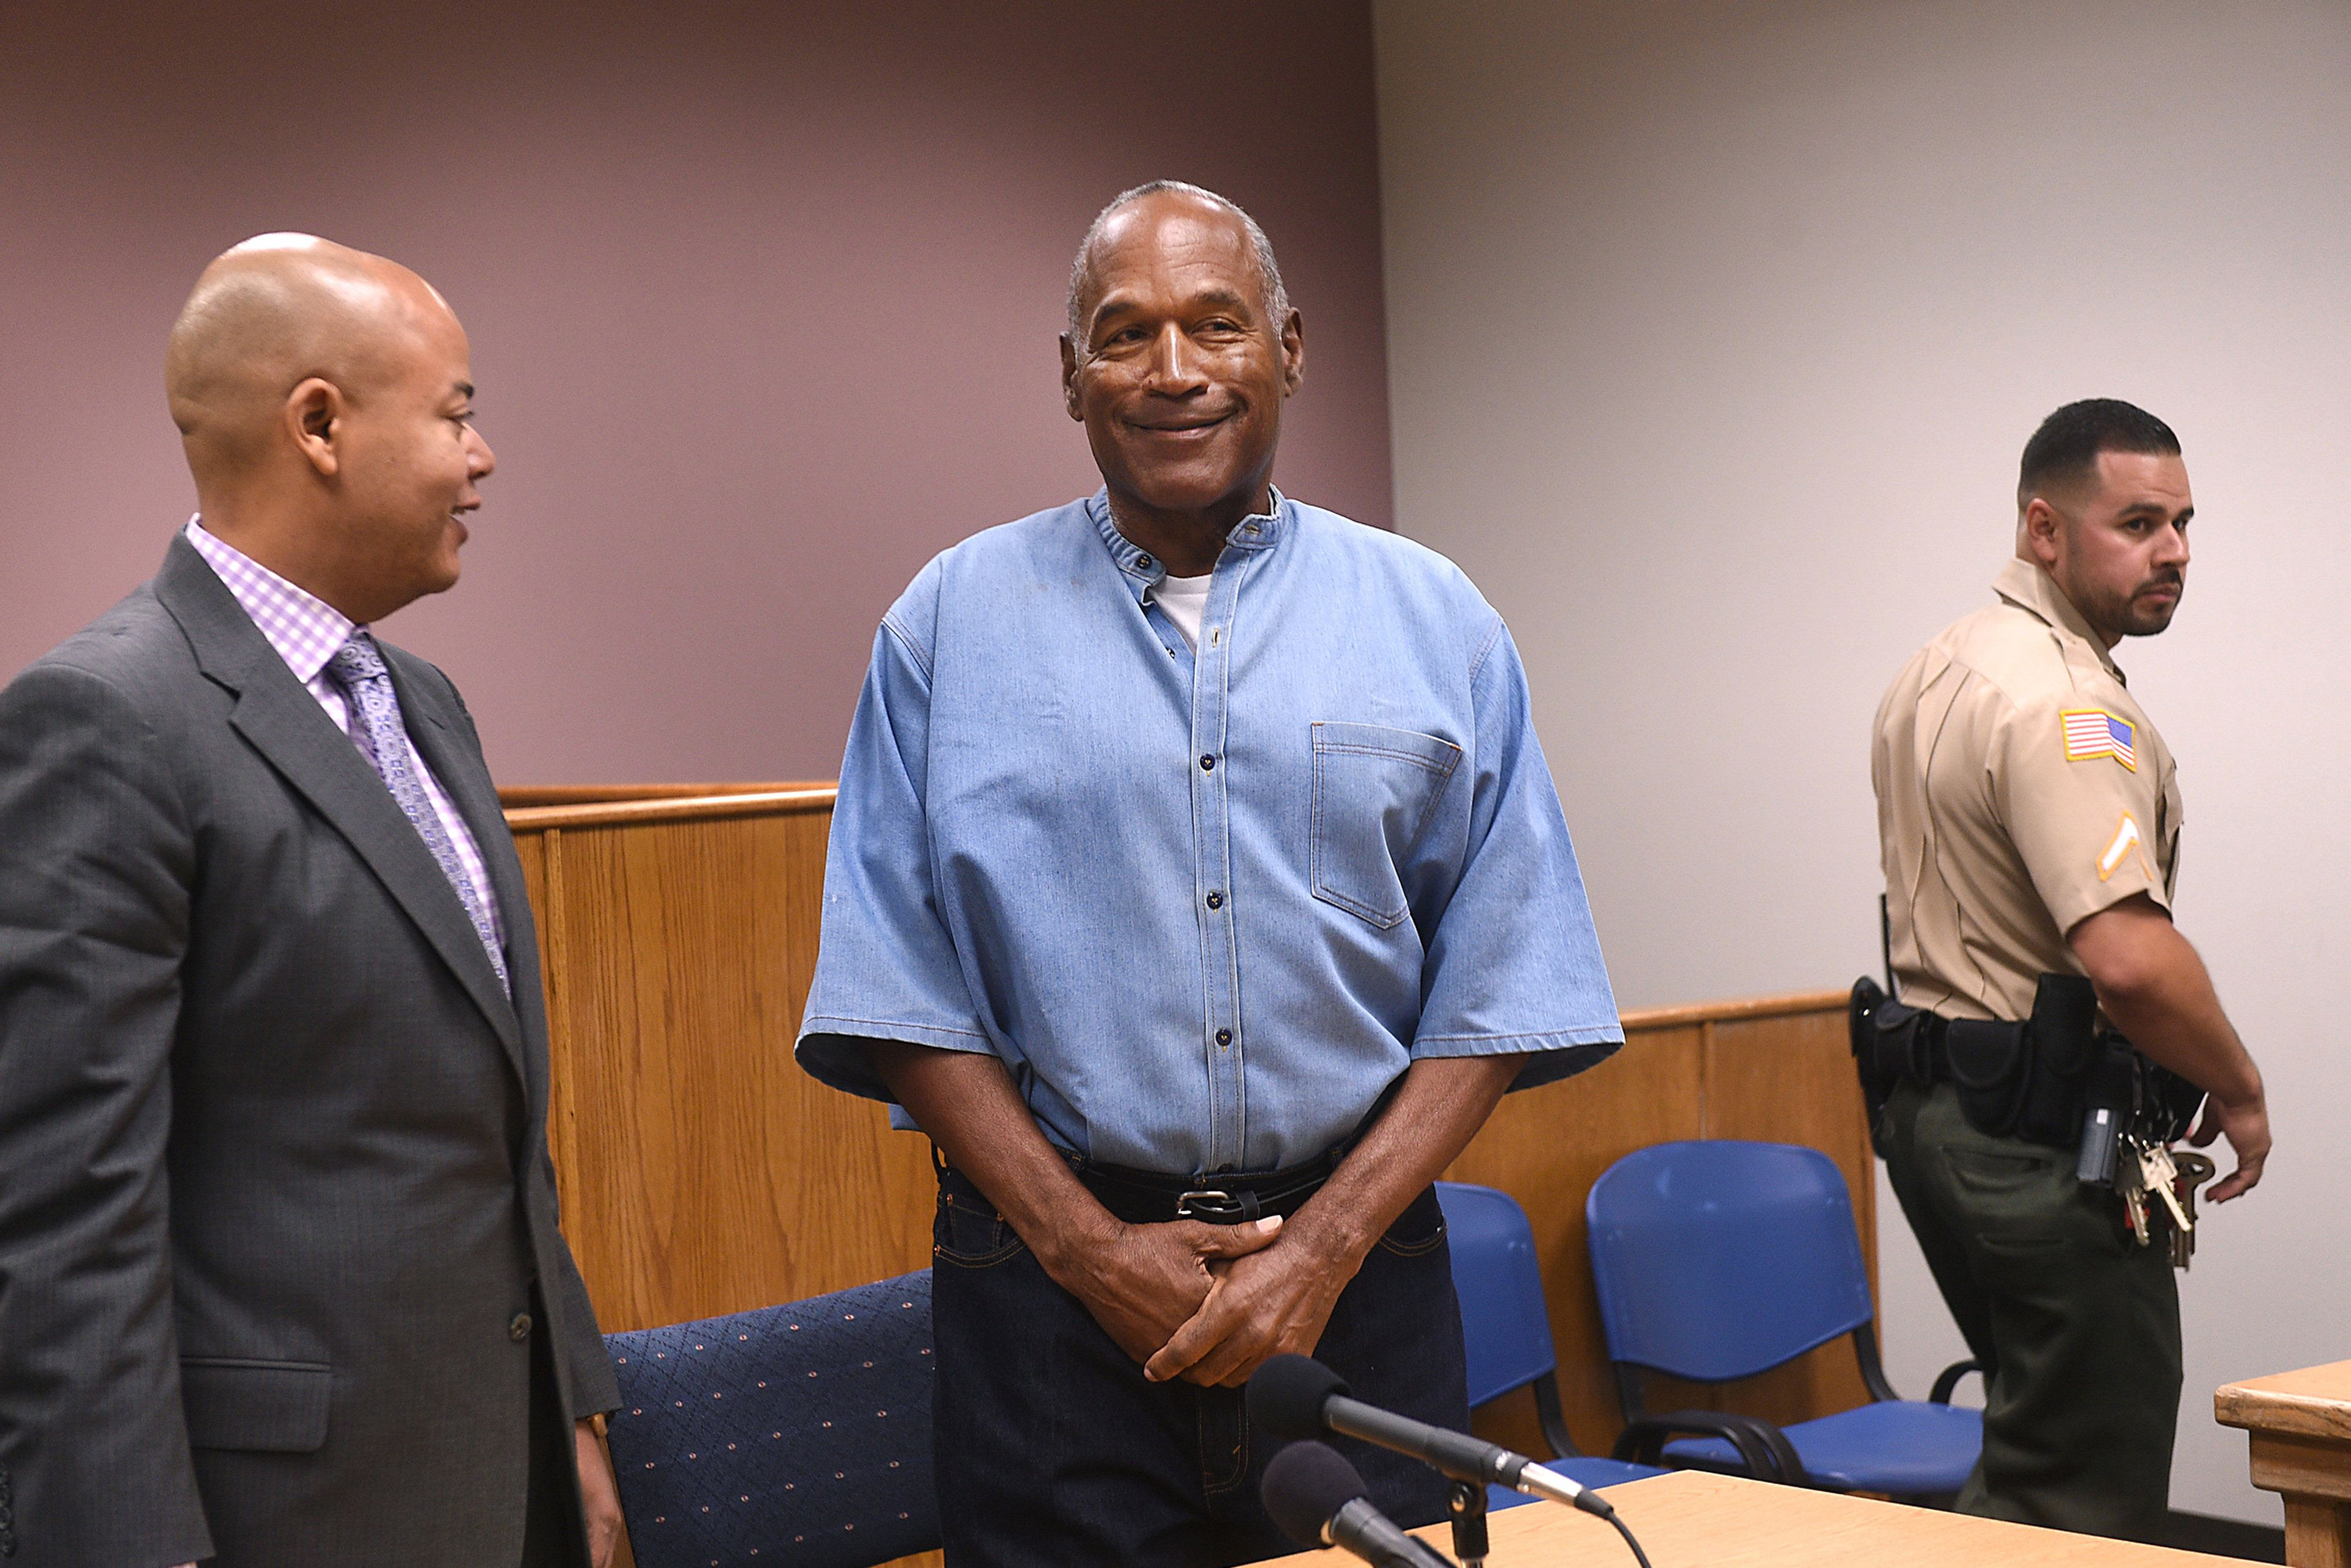 Former professional football player O.J. Simpson, center, stands during a parole hearing at Lovelock Correctional Center in Lovelock, Nevada, U.S., on Thursday, July 20, 2017. Simpson may learn, as early as Thursday afternoon, whether the Nevada Board of Parole Commissioners will decide to free him in the fall or whether he will continue to serve a nine-to-33-year sentence for 12 convictions, including kidnapping and armed robbery, stemming from a 2007 sting operation in which he tried to recover sports memorabilia from two collectors. Photographer: Jason Bean/Pool via Bloomberg